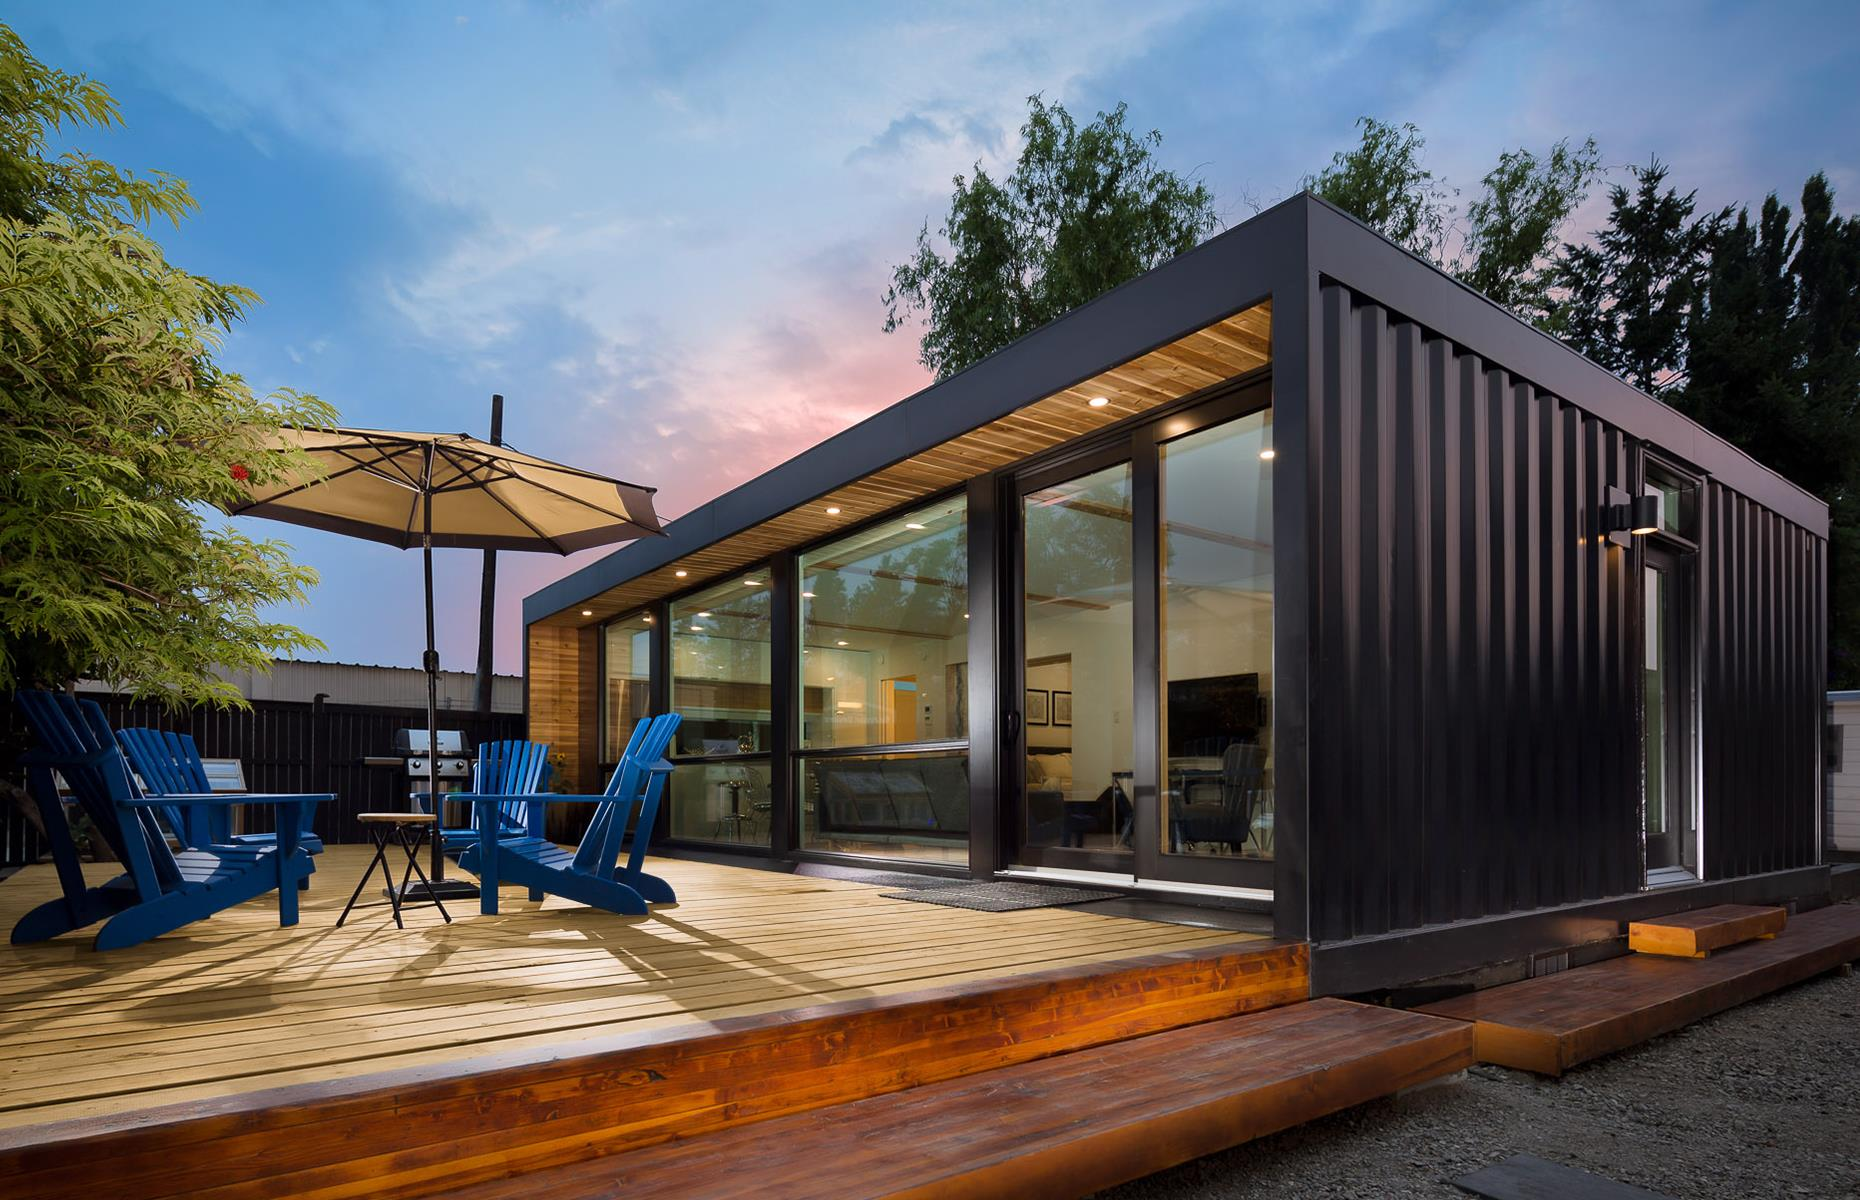 These cheap container homes cost next to nothing